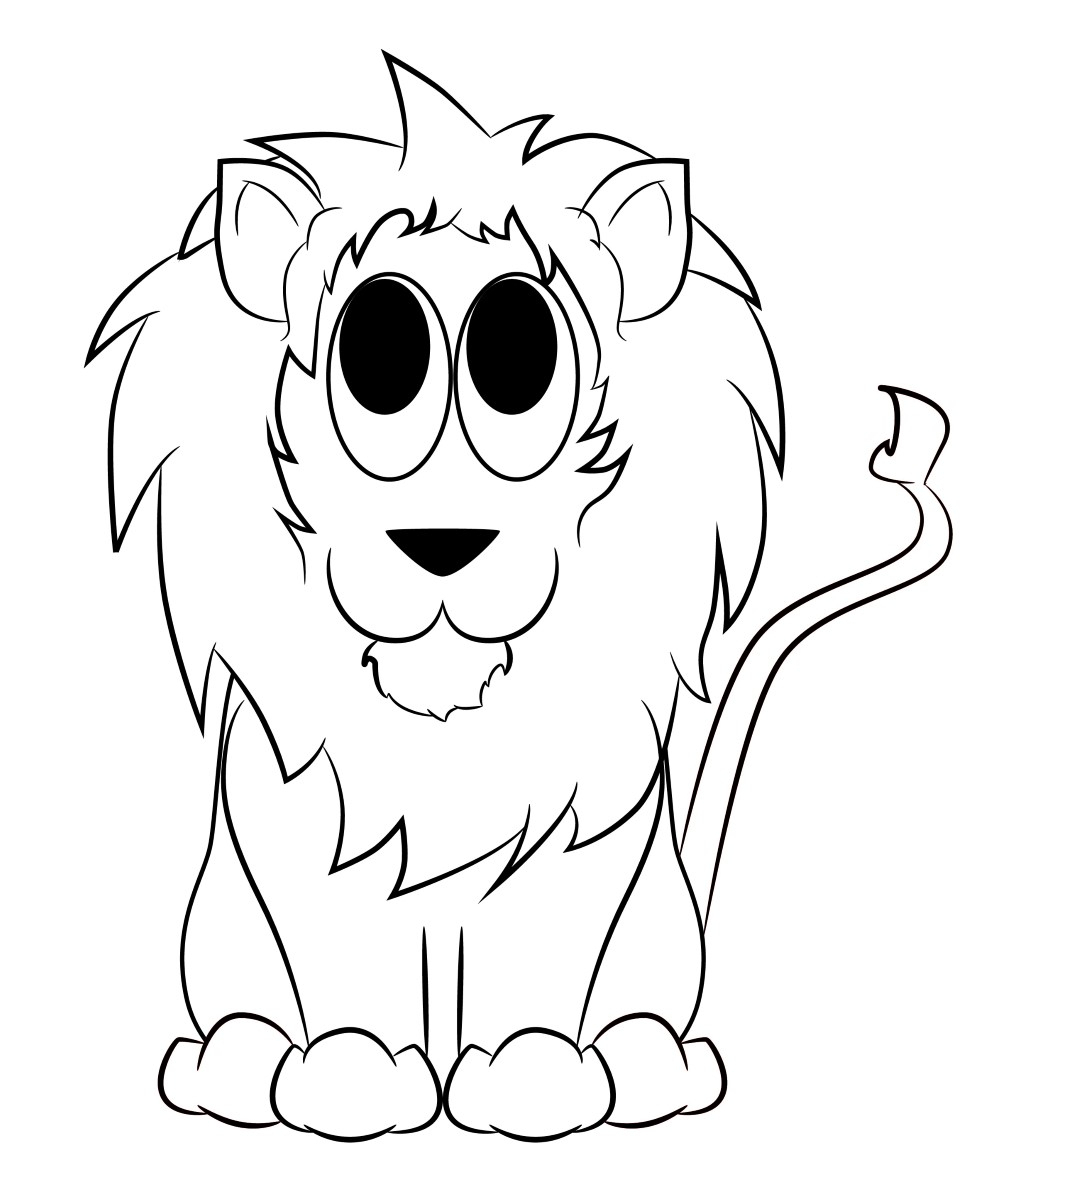 1080x1190 Simple Cartoon Drawing Of Lion